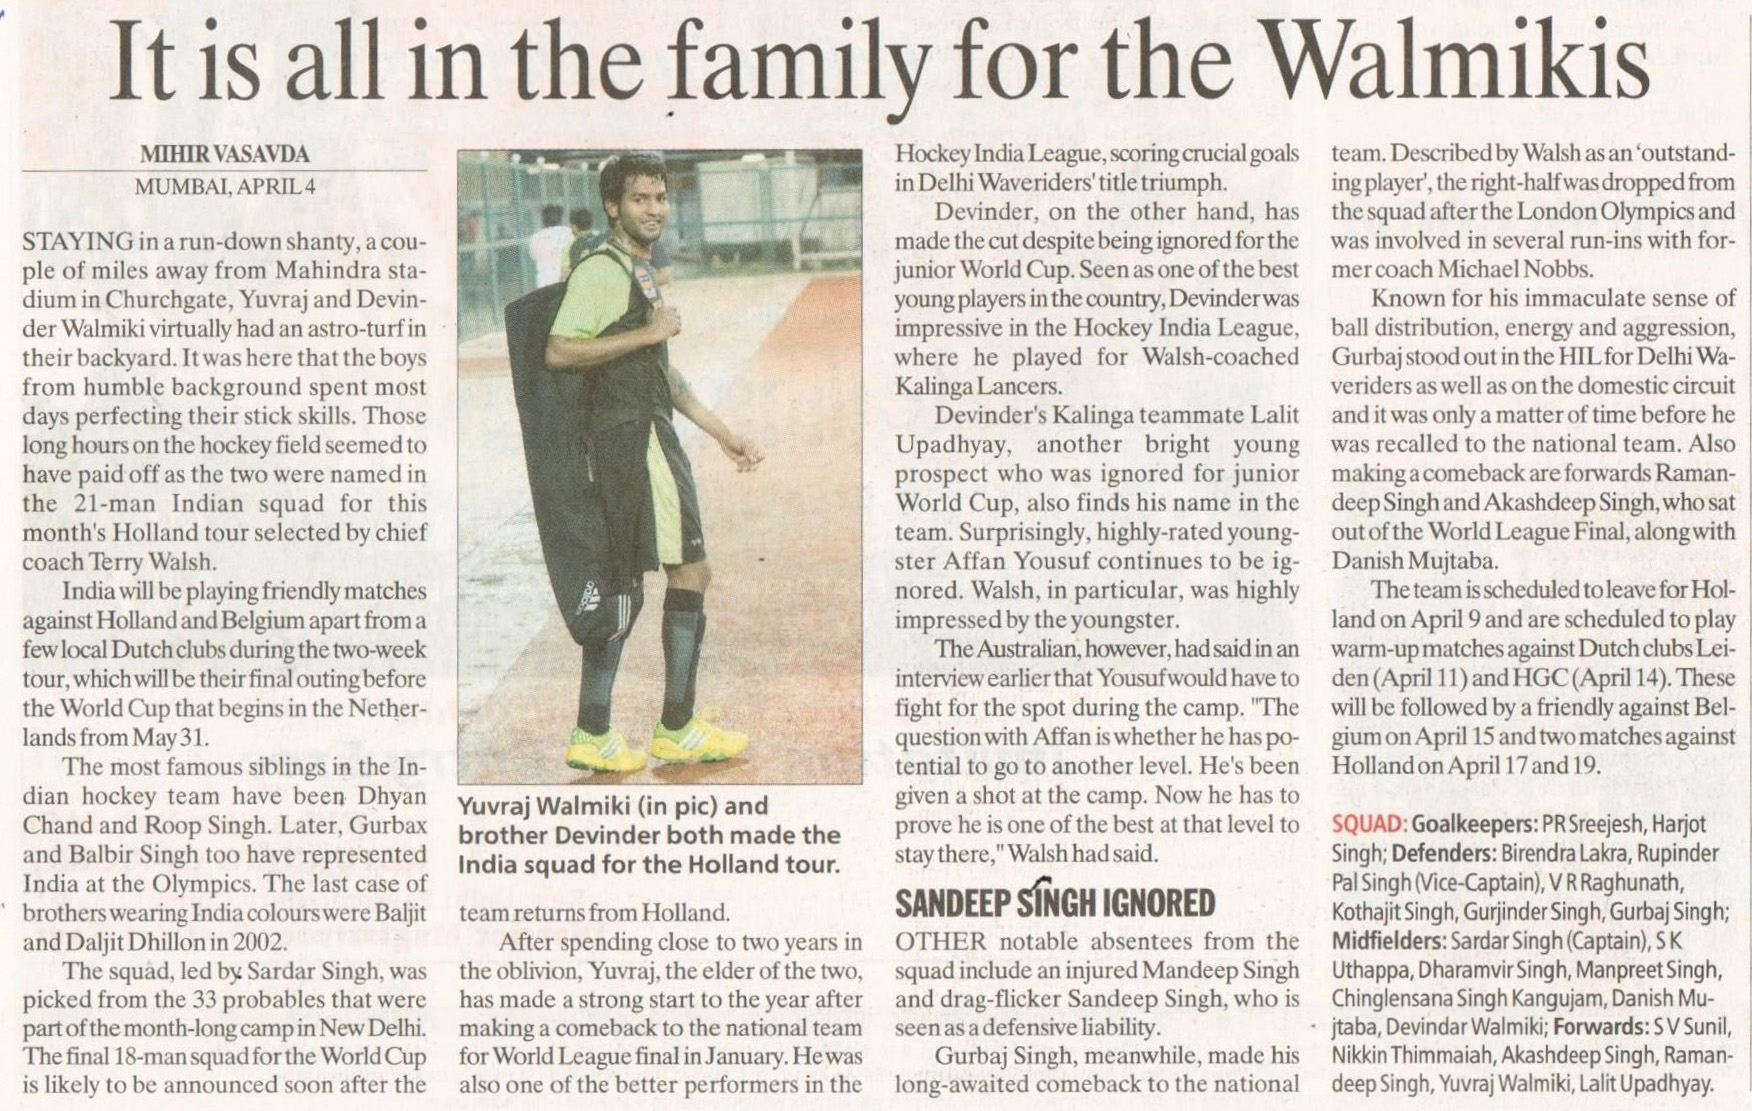 It is all in the family for the Walmikis